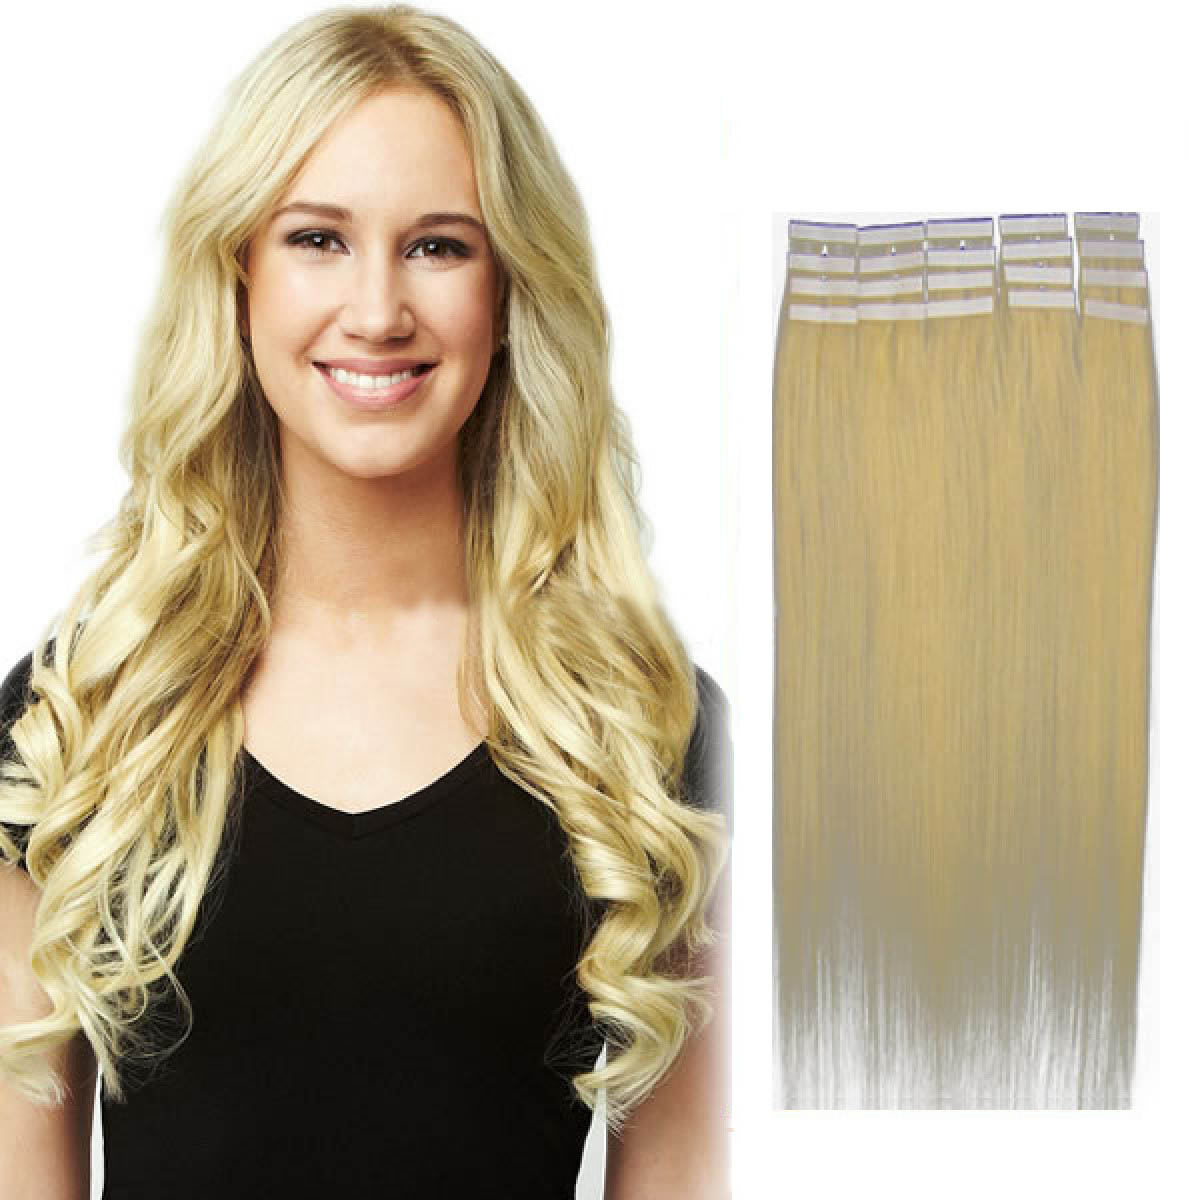 Hair extensions 16 choice image hair extension hair highlights inch 613 bleach blonde tape in human hair extensions 20pcs 16 inch 613 bleach blonde tape pmusecretfo Choice Image